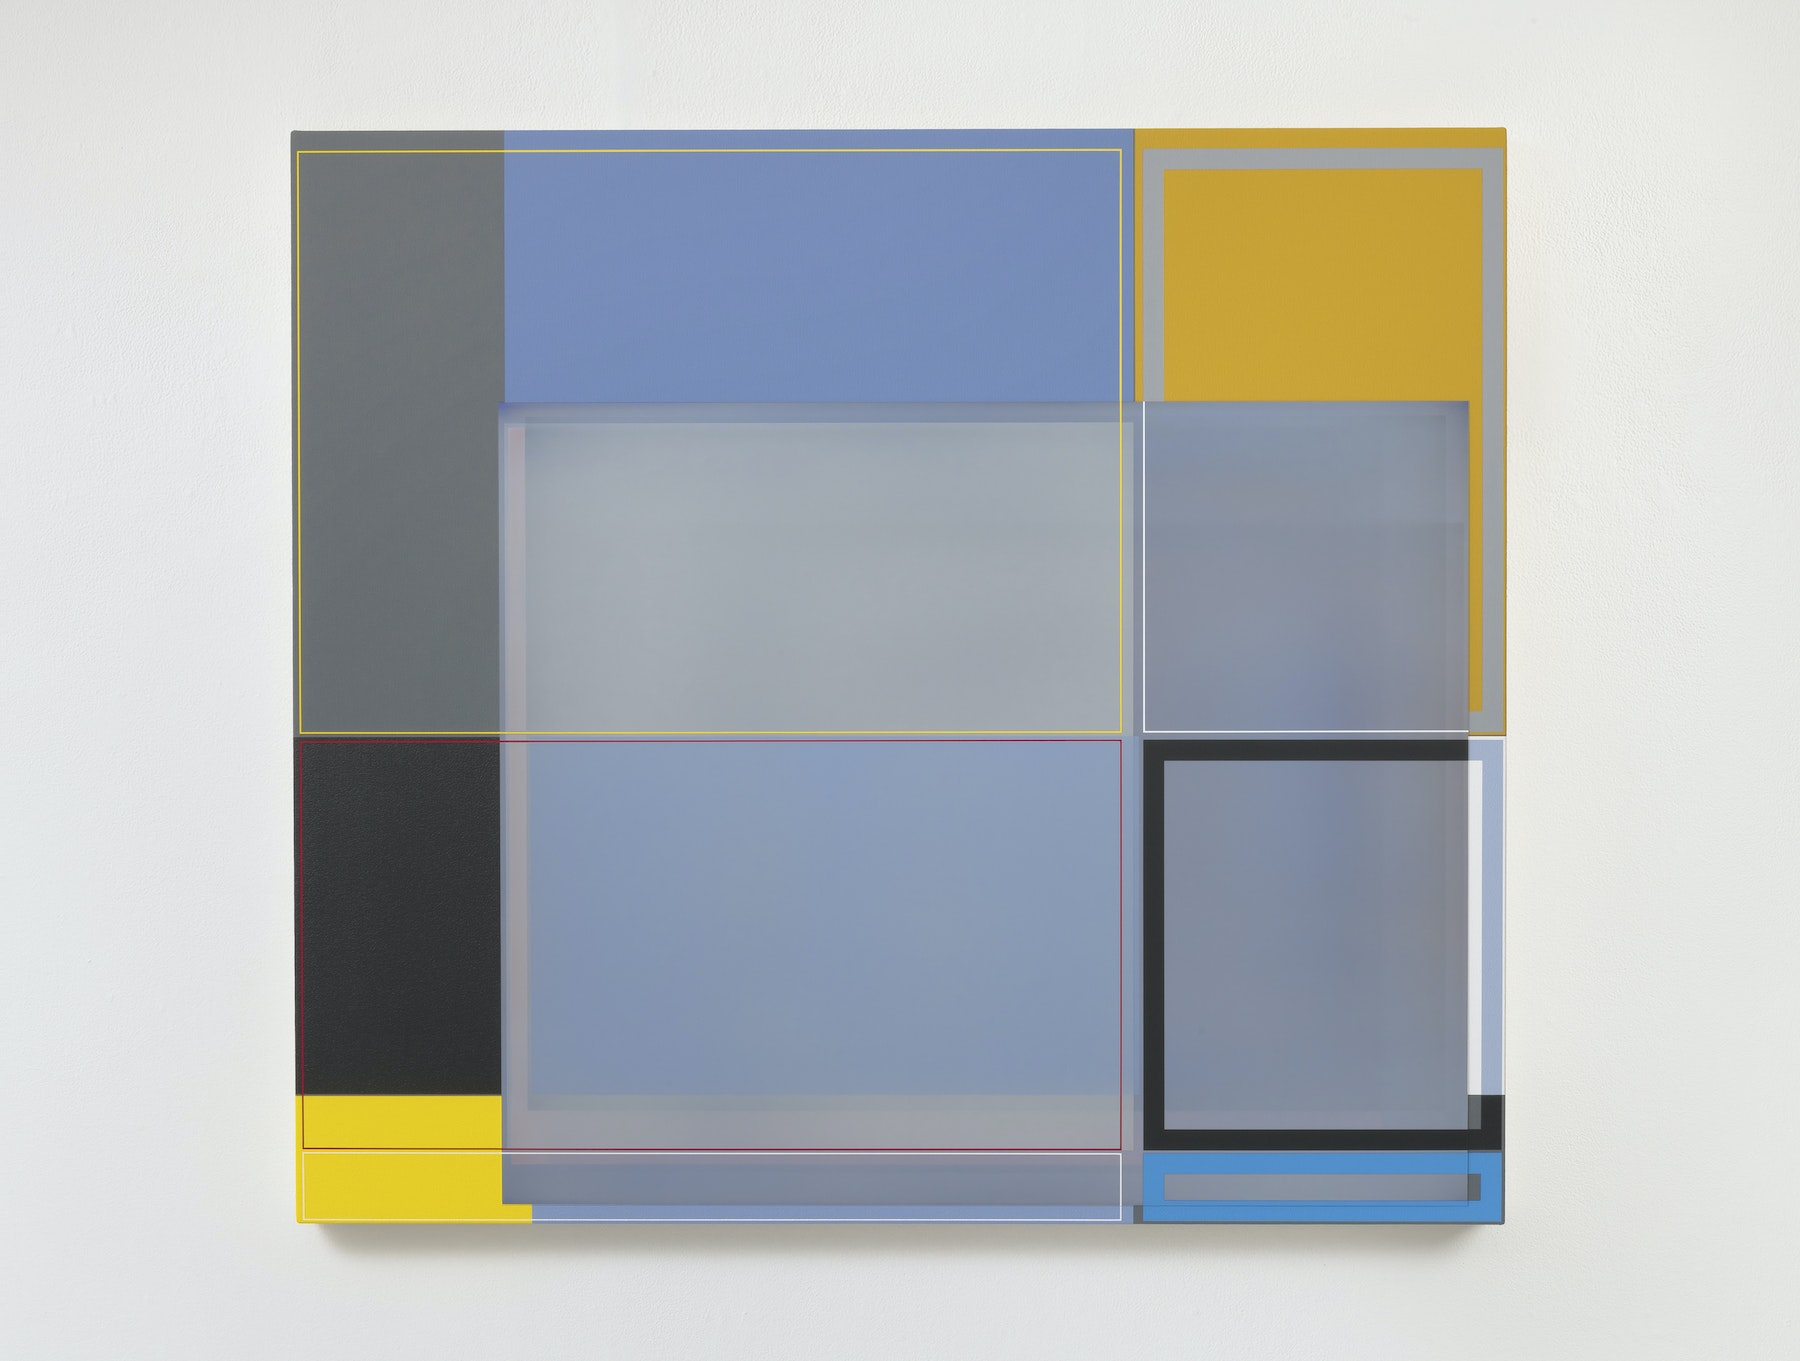 "Patrick Wilson ""Disrupted Grid (Gray),"" 2020 Acrylic on canvas 37 x 41"" [HxW] (93.98 x 104.14 cm) Inventory #WIL565 Courtesy of the artist and Vielmetter Los Angeles Photo credit: Robert Wedemeyer"